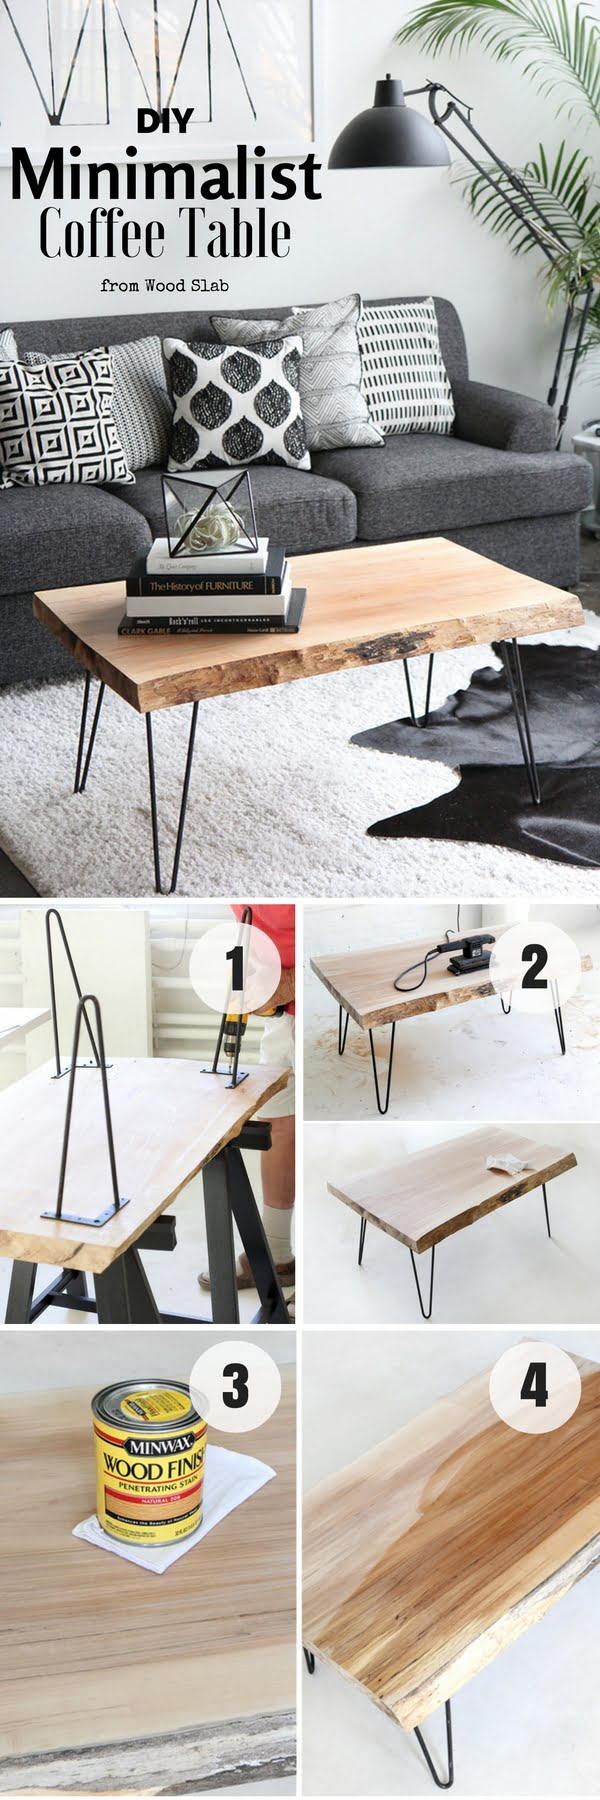 Check out how to build this easy DIY Minimalist Coffee Table